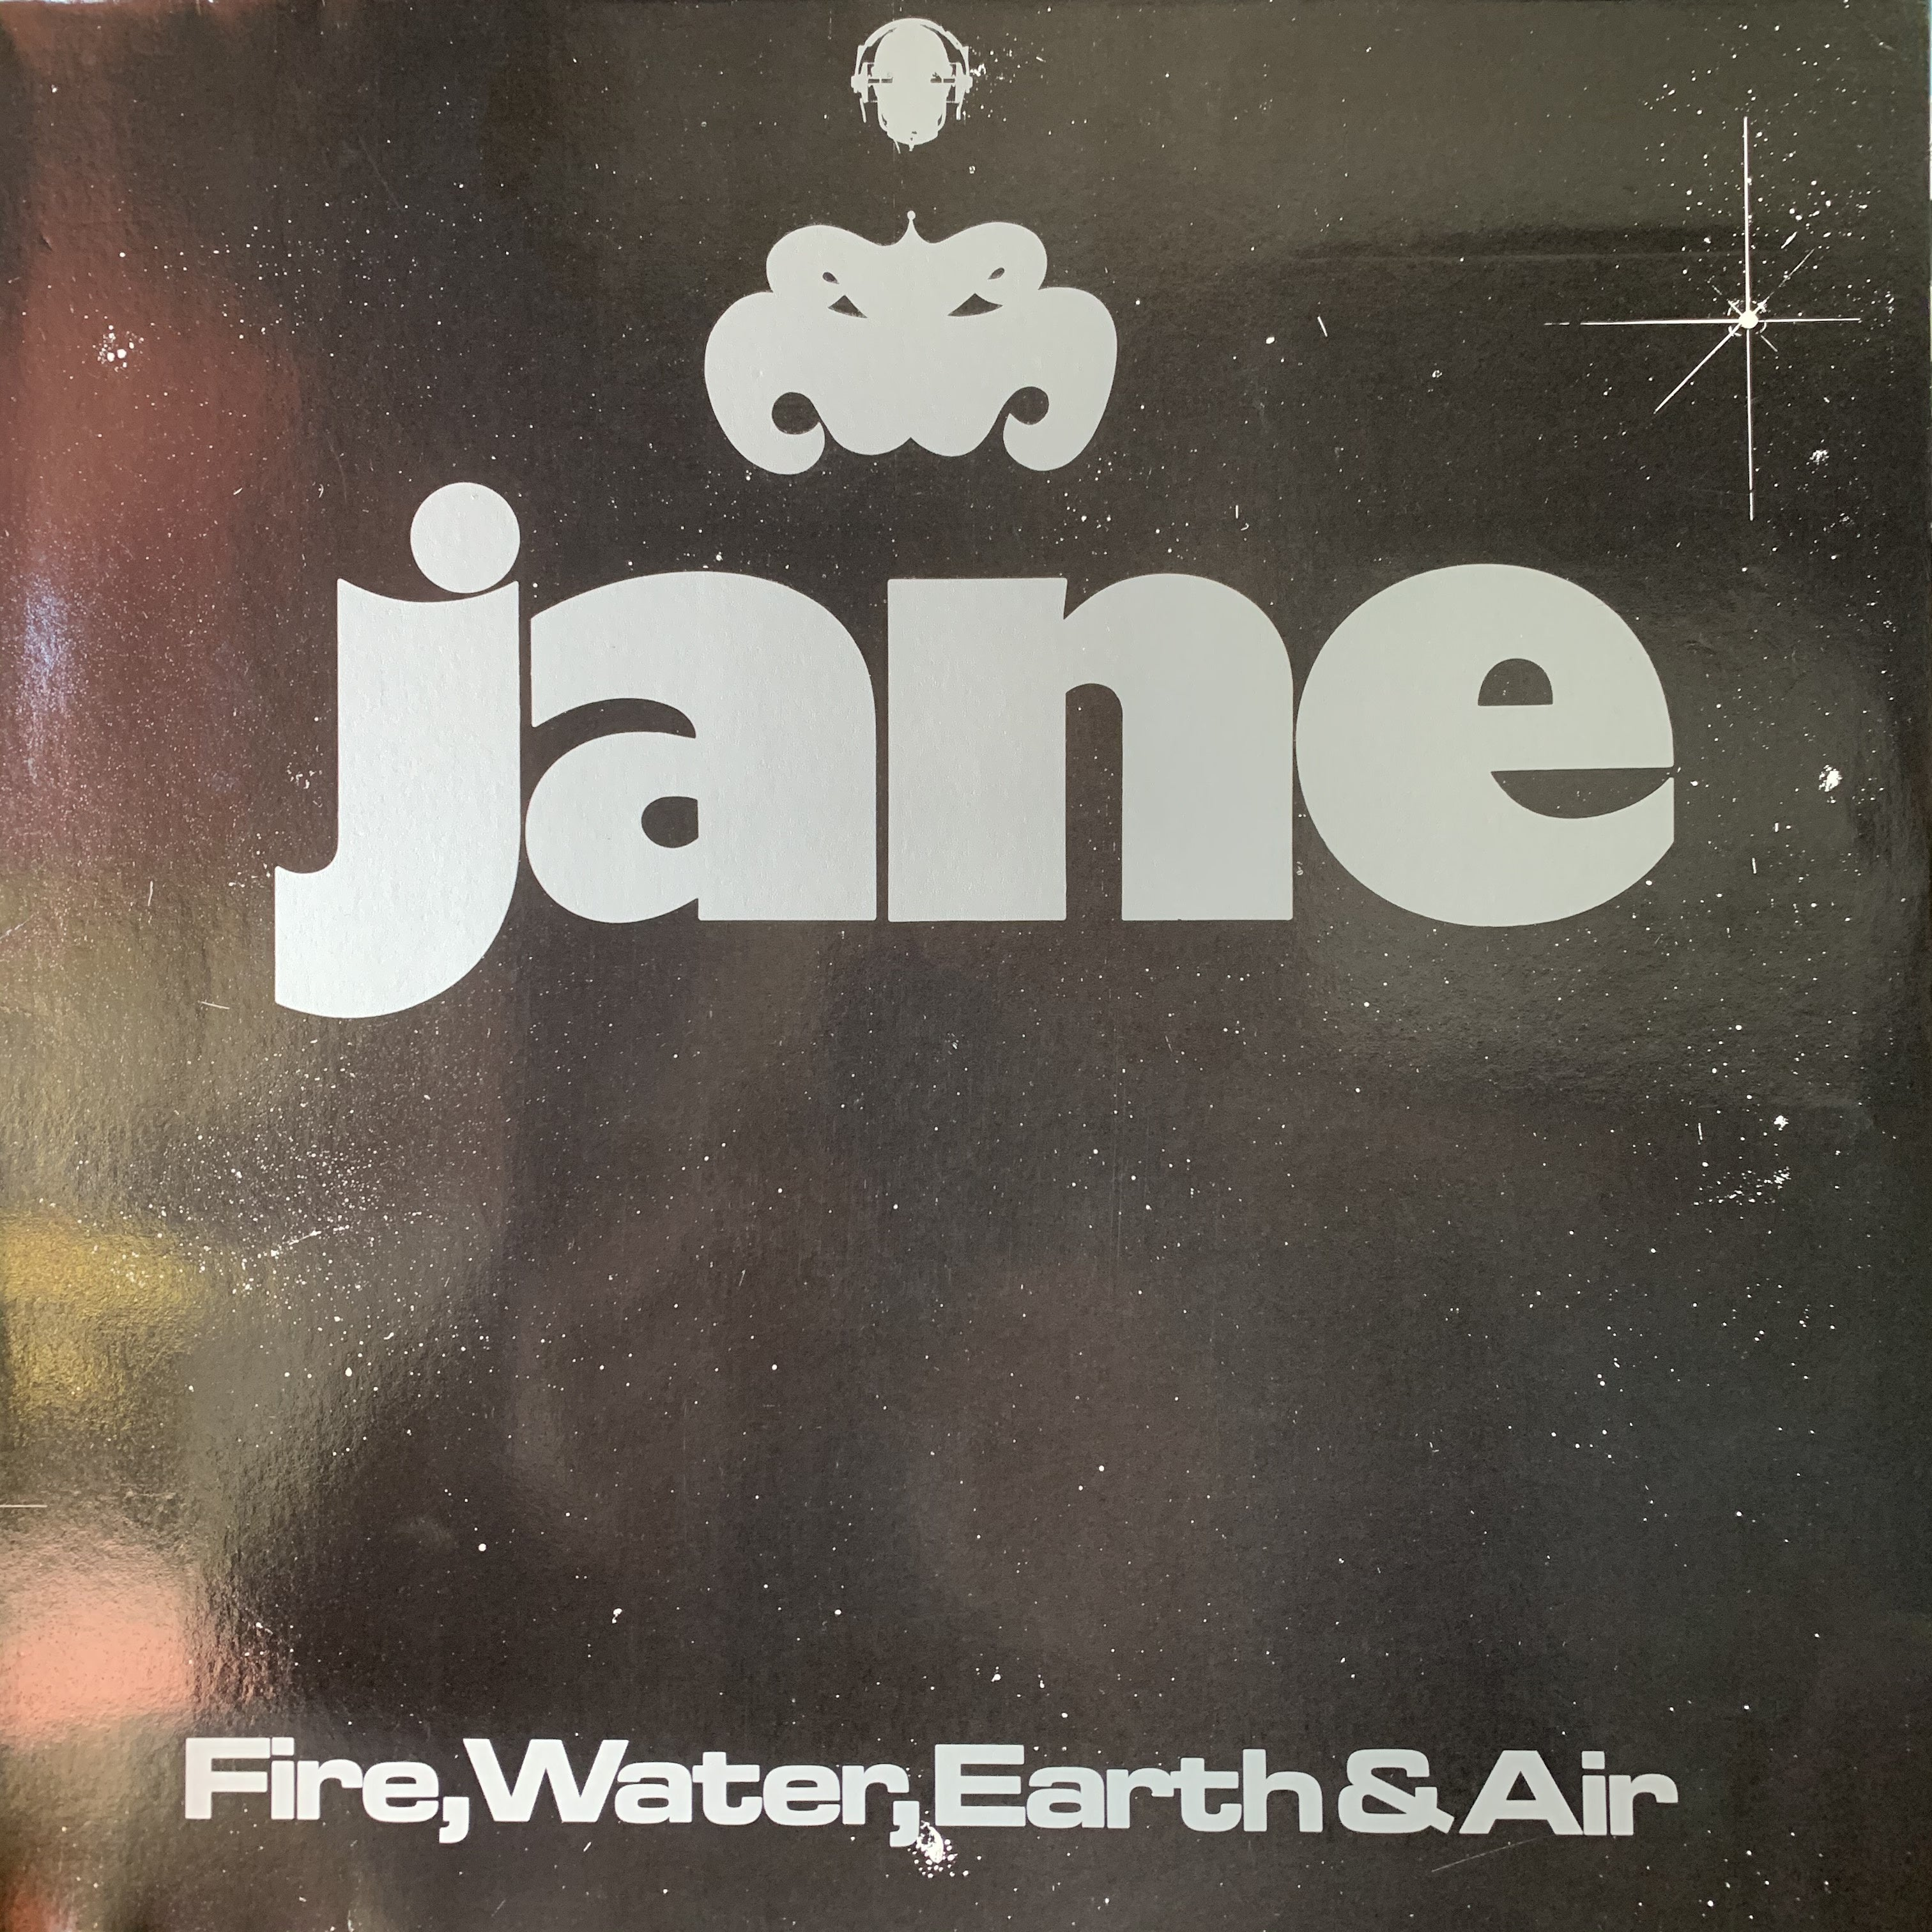 JANE-FIRE, WATER, EARTH & AIR LP NM COVER VG+